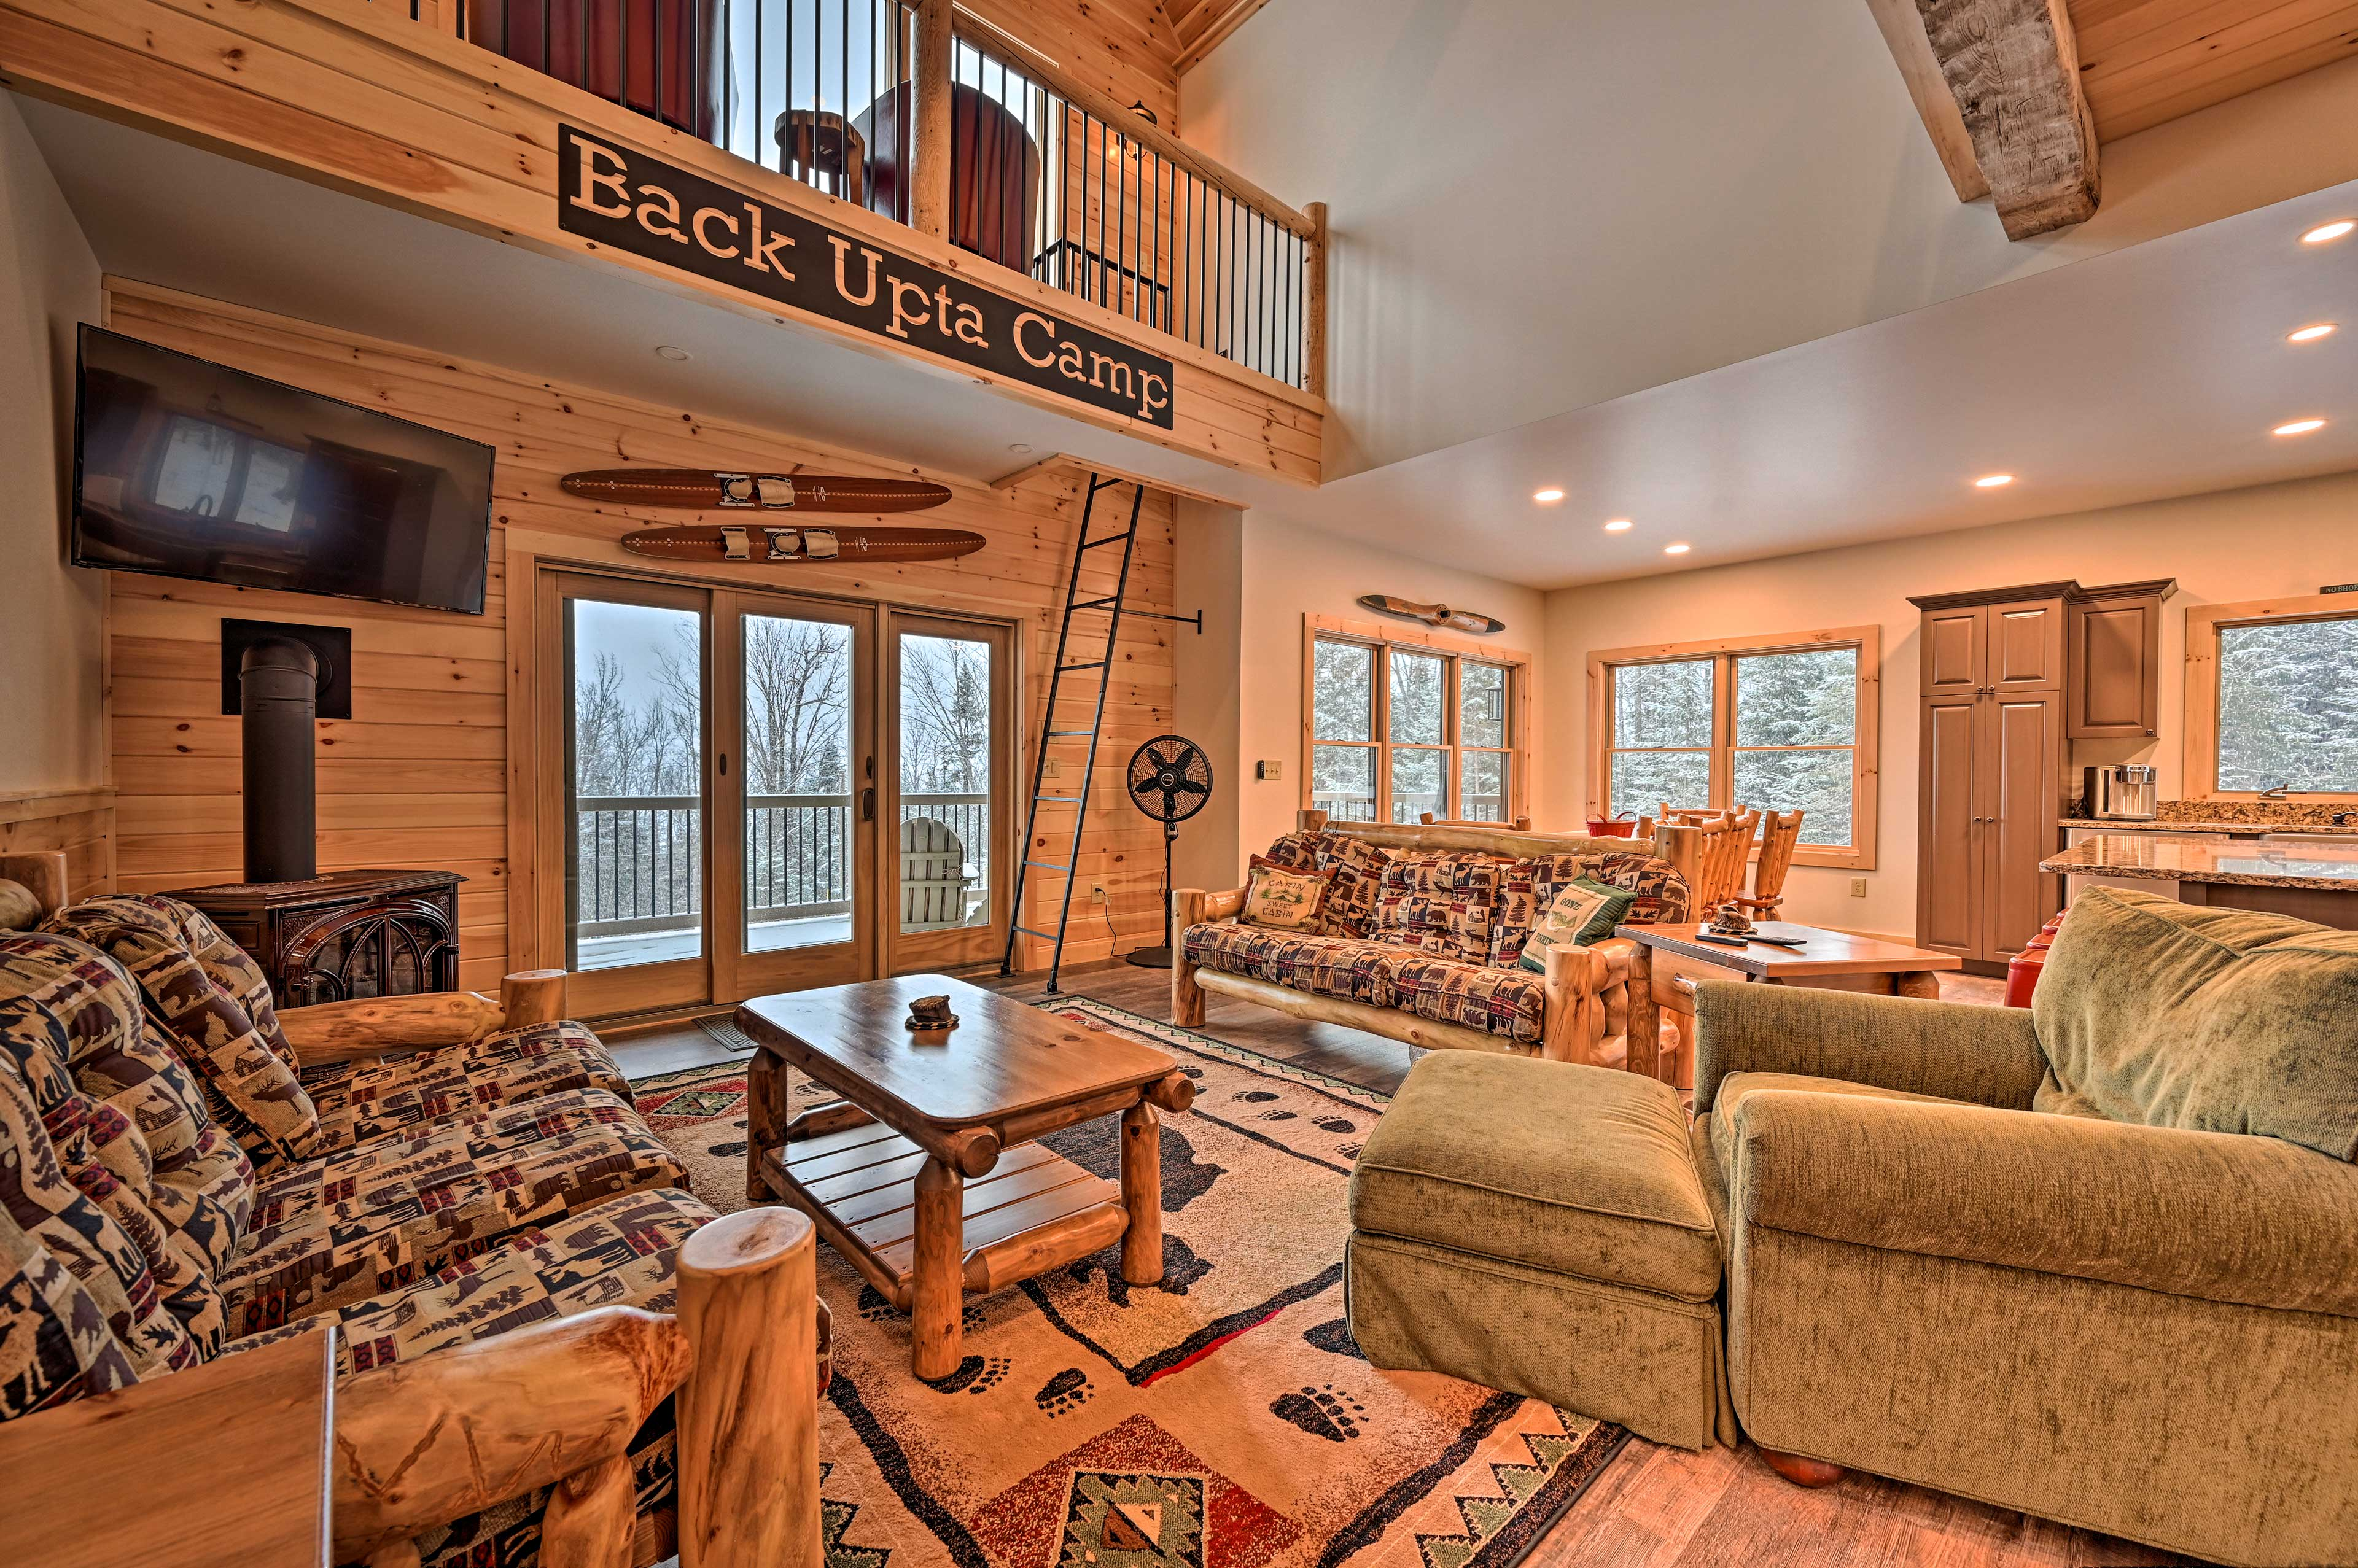 Book a stay at 'Back Upta Camp' for a cozy retreat to Pittsburg.